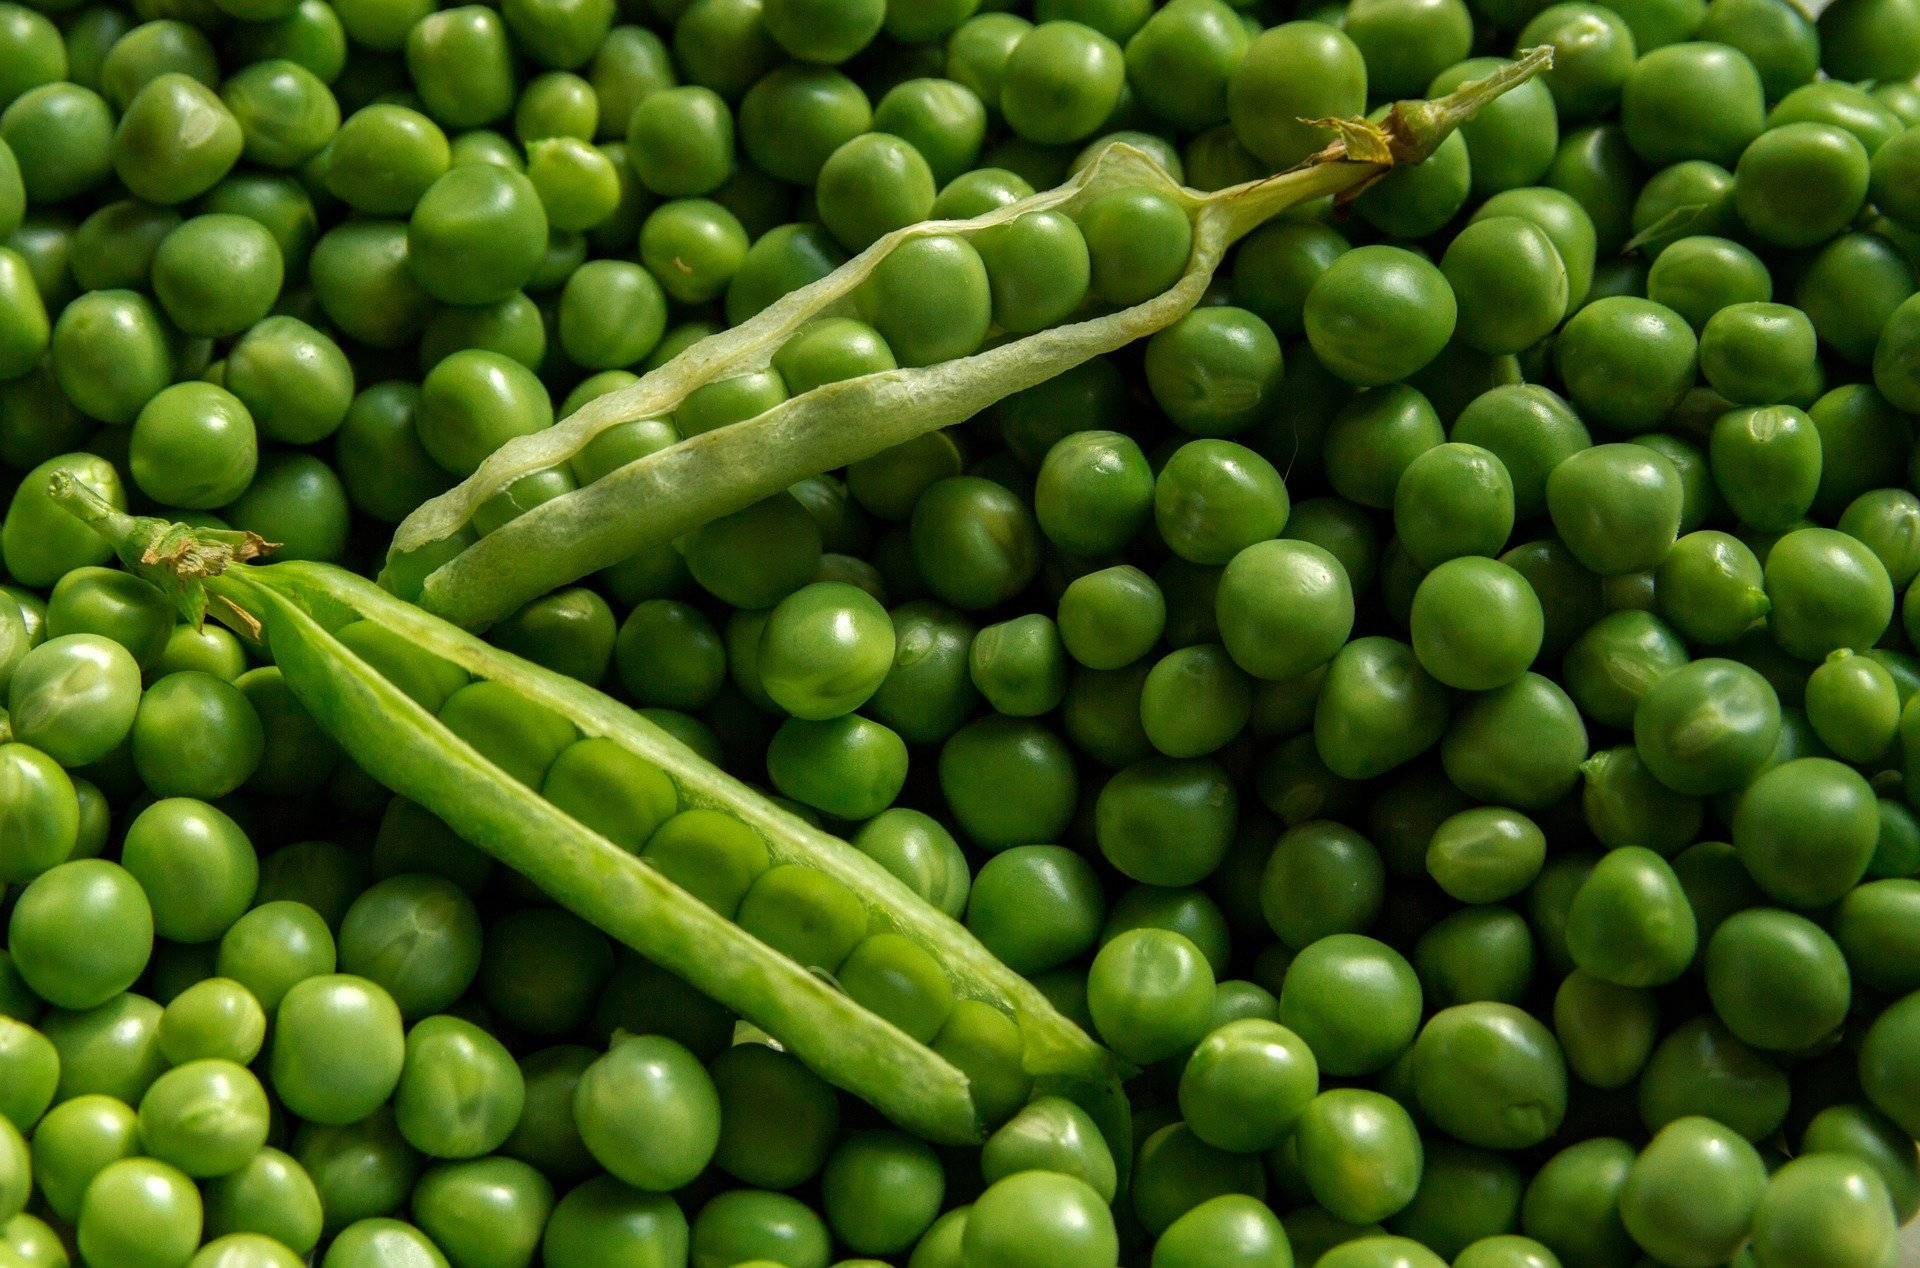 Close up of green peas